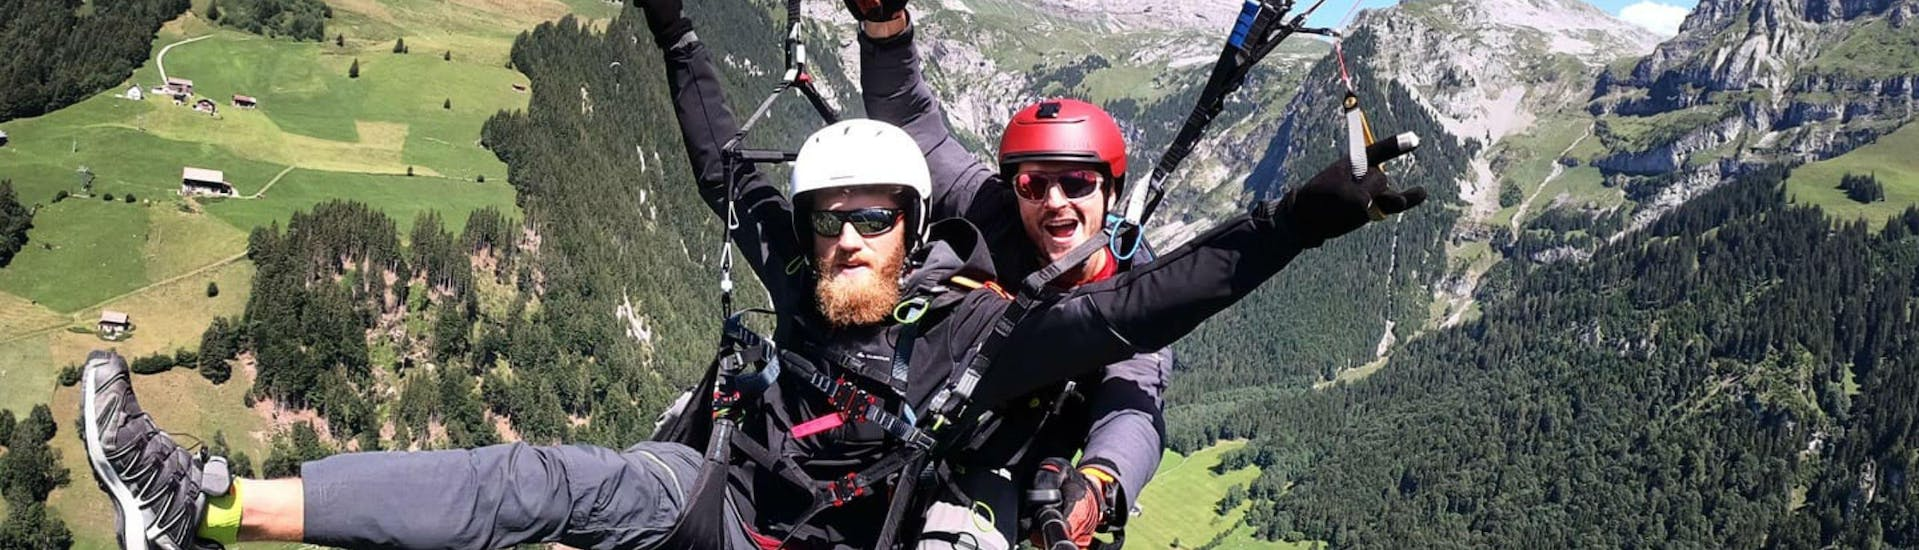 A tandem pilot from Mountain O'Clock and his passenger are enjoying the spectacular scenery while paragliding at Lake Lucerne.